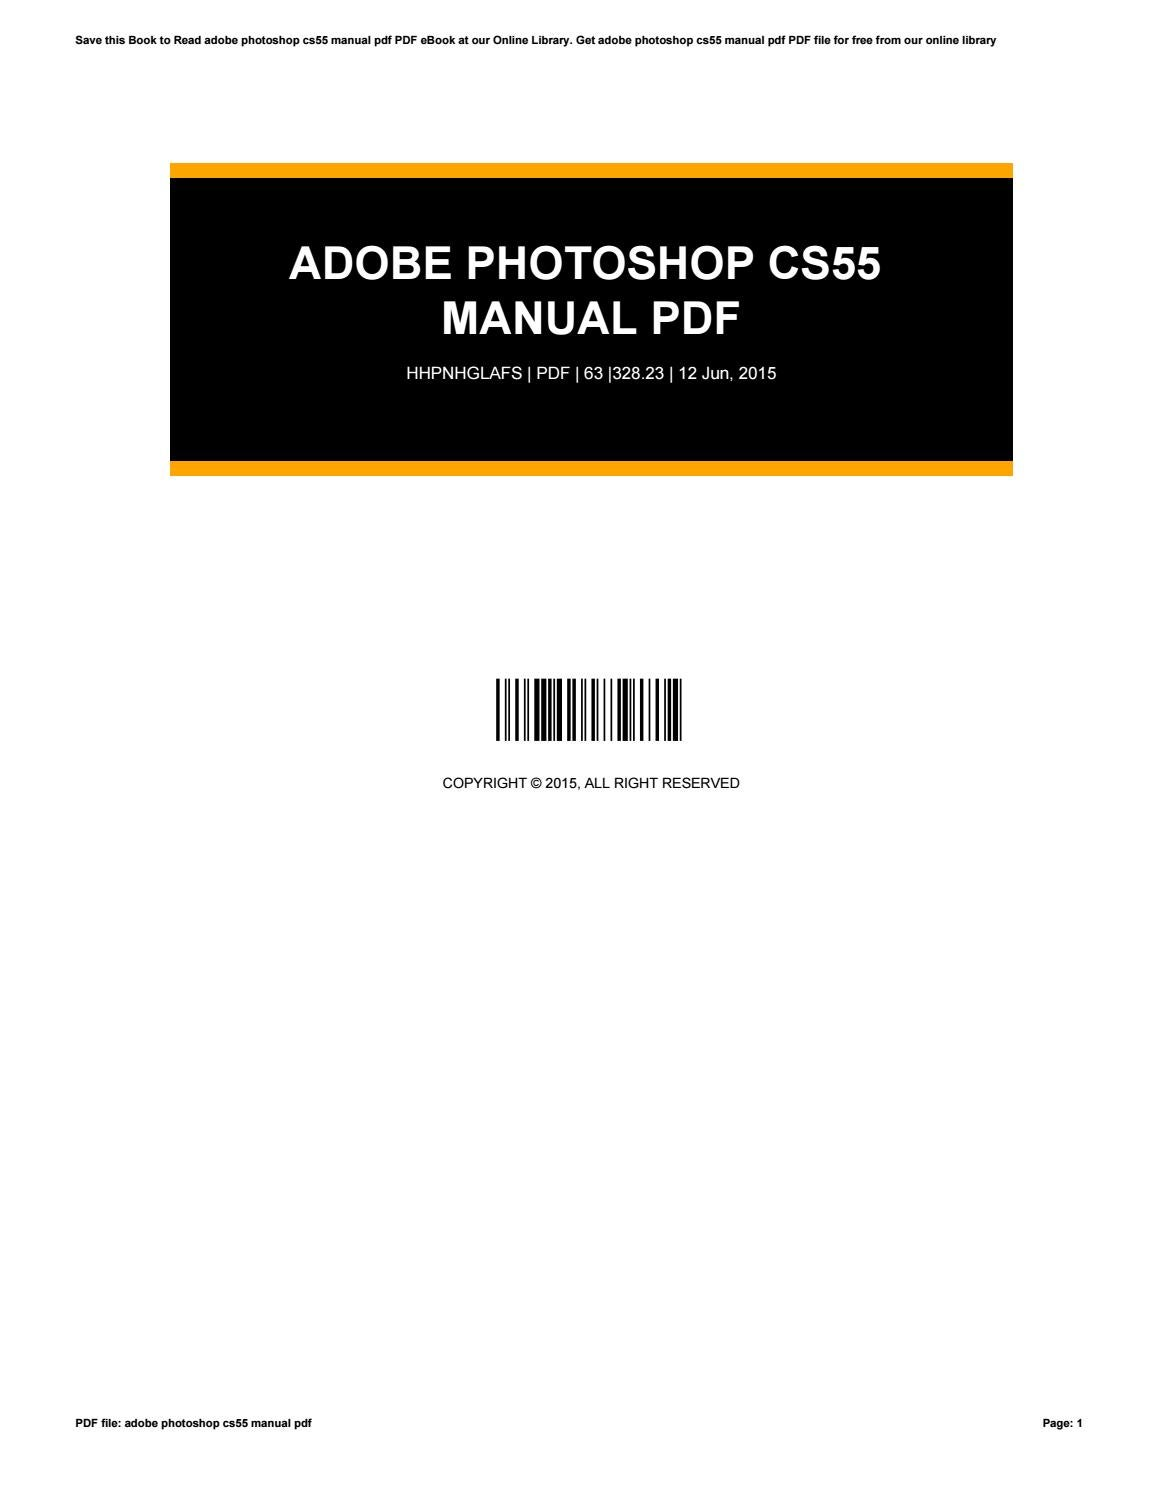 photoshop free manual ebook